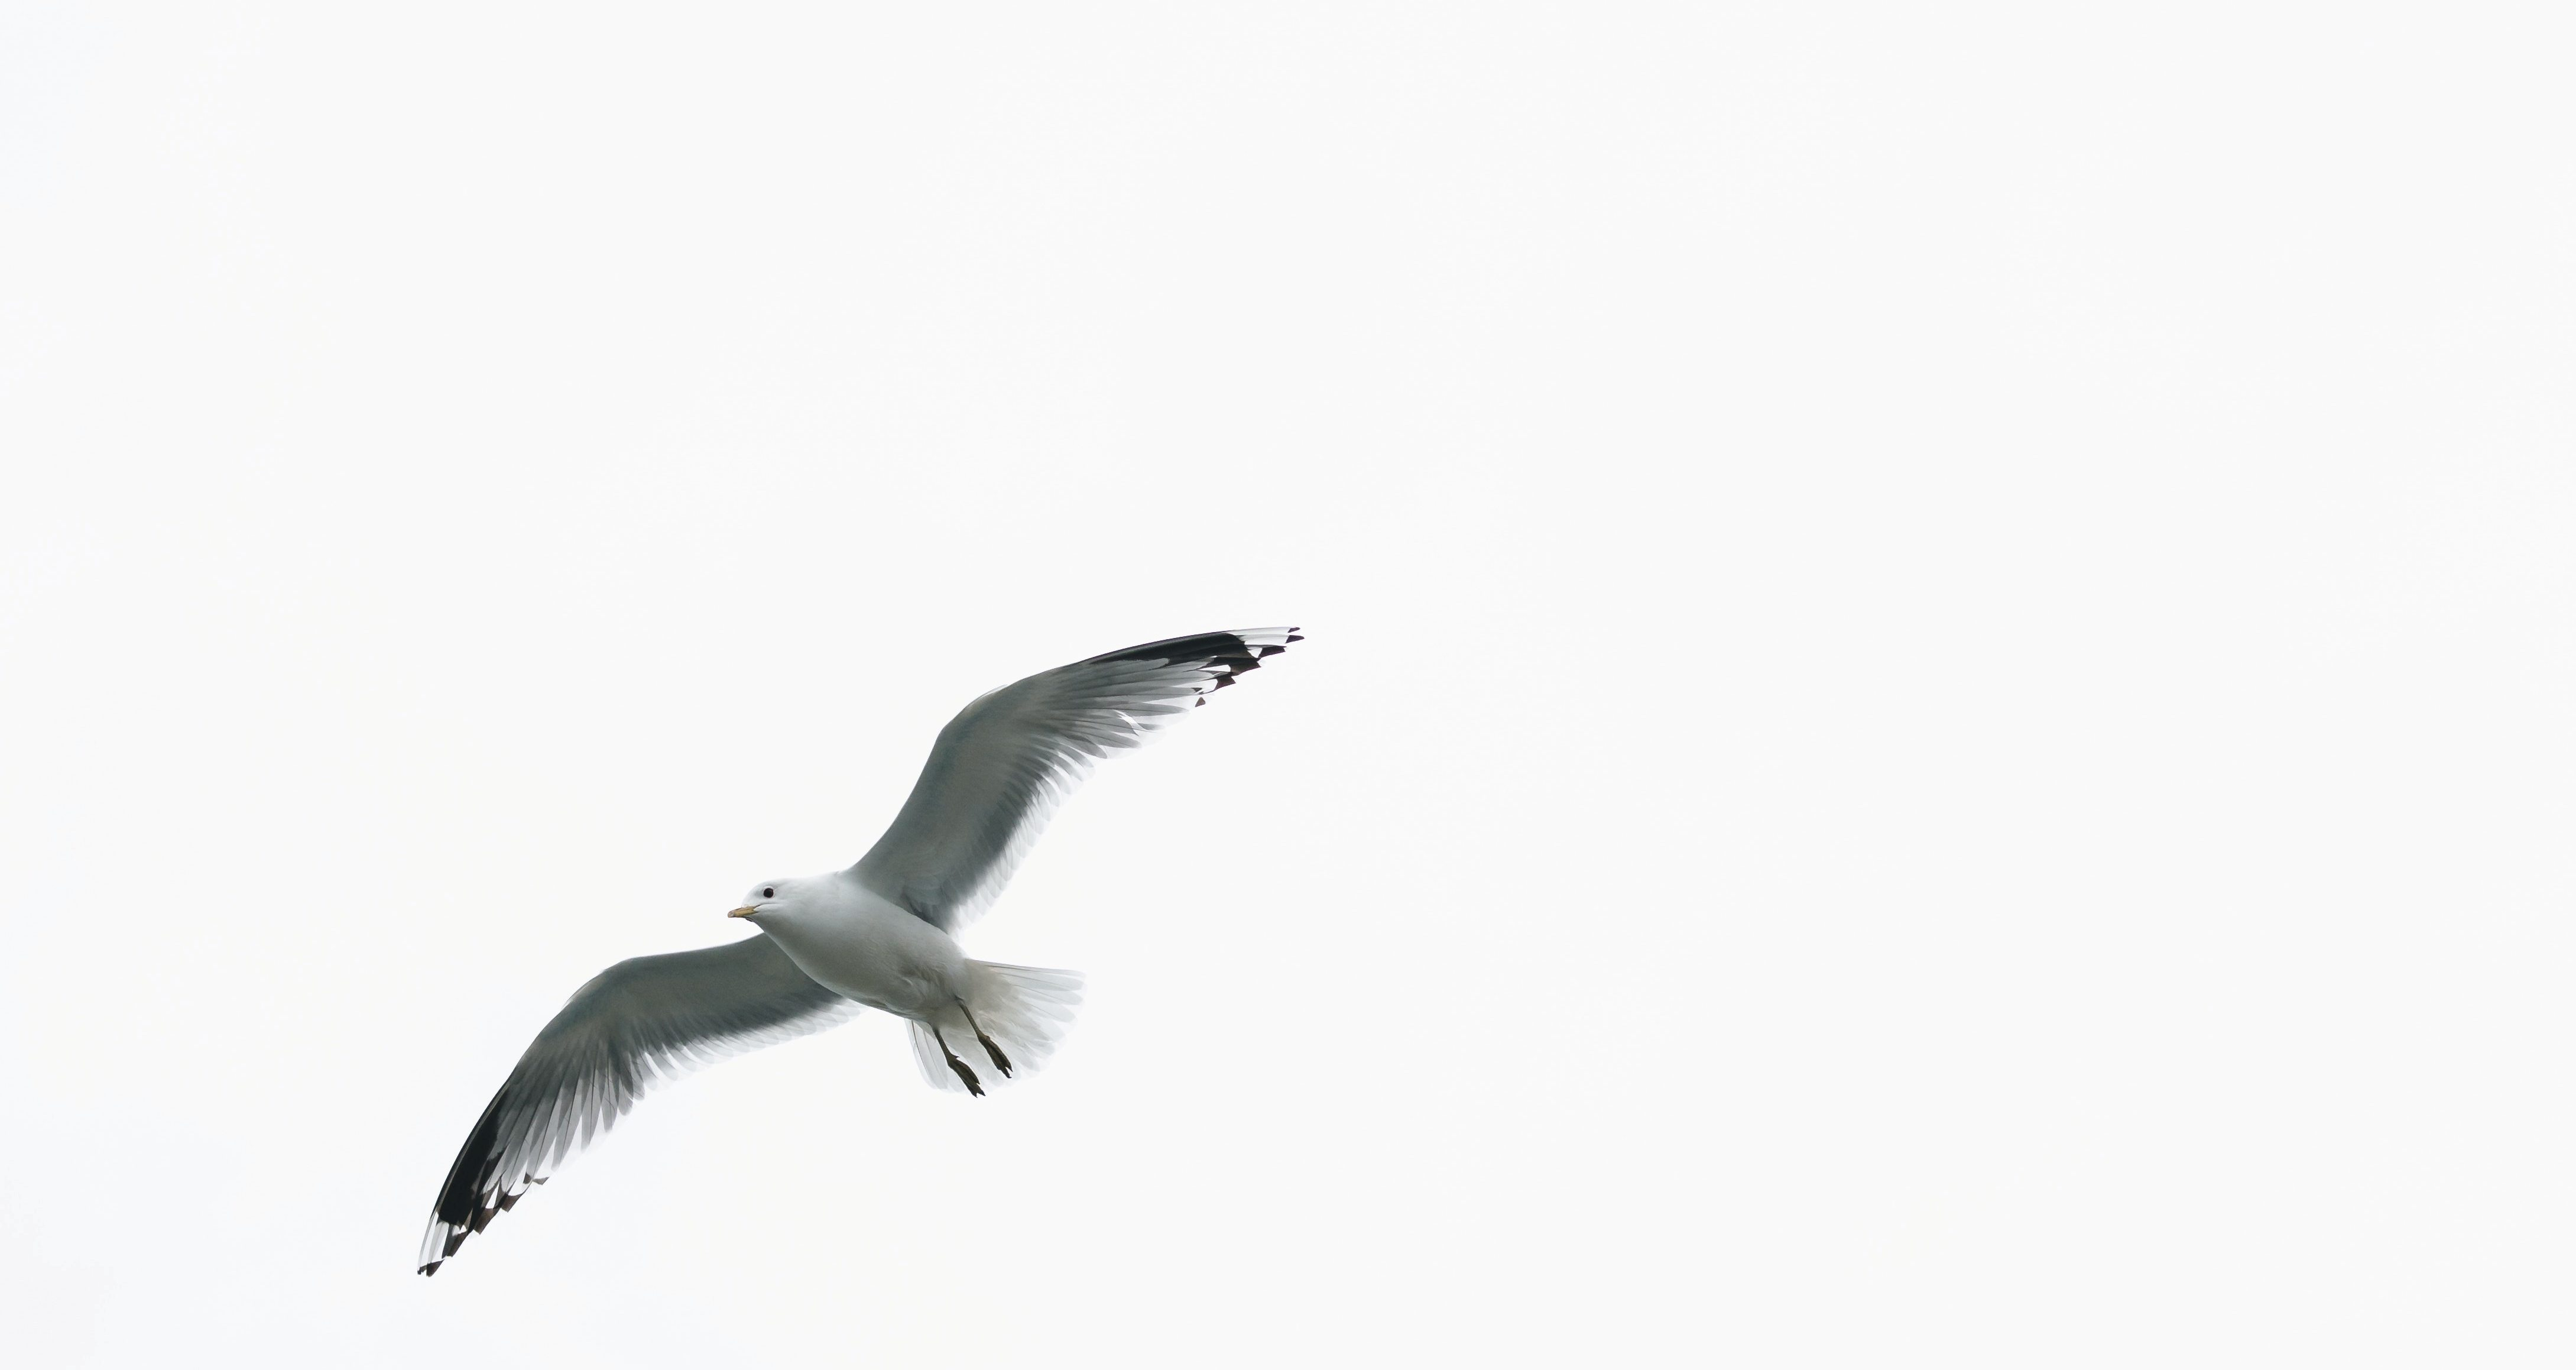 Bird flying in open sky